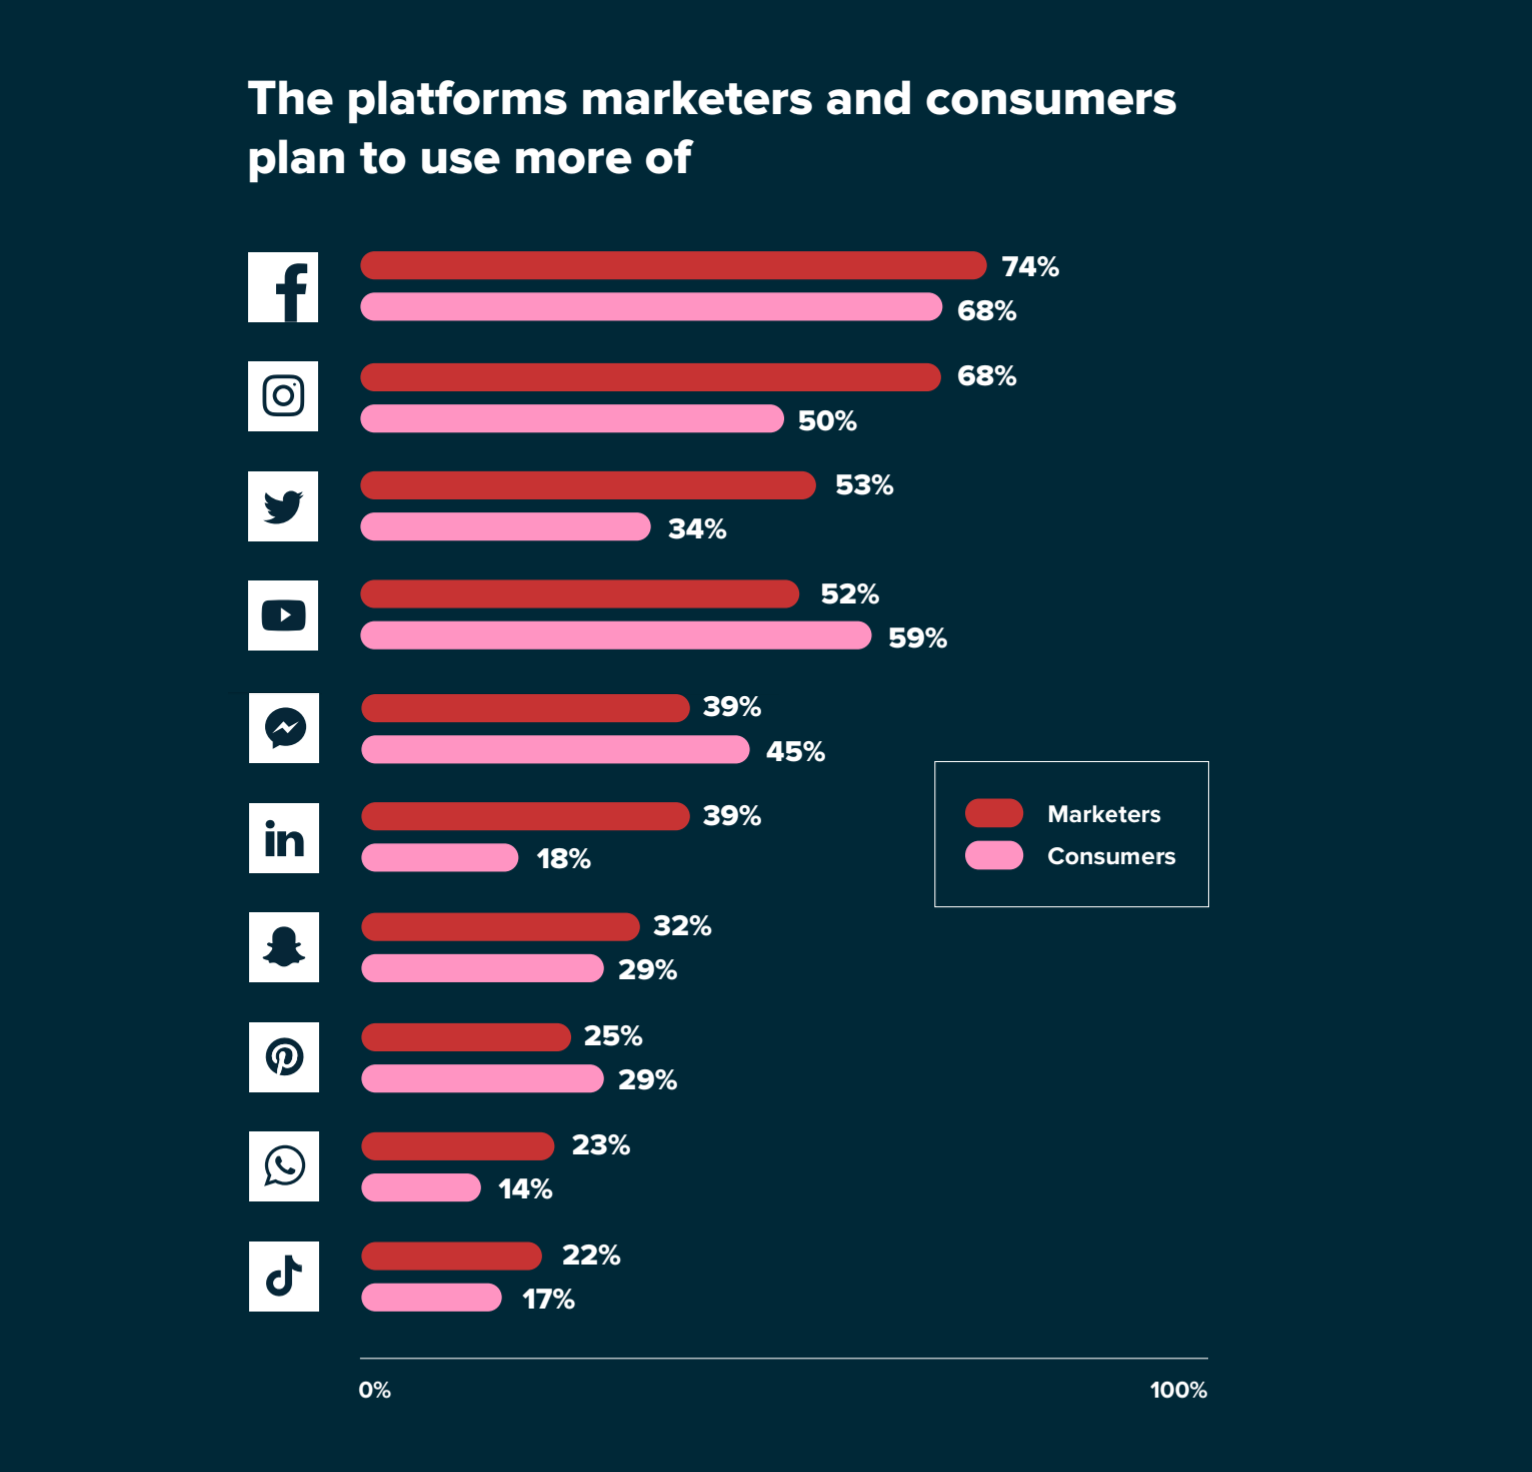 New Data - Sprout Social 2020 Index Survey of Marketers and Consumers